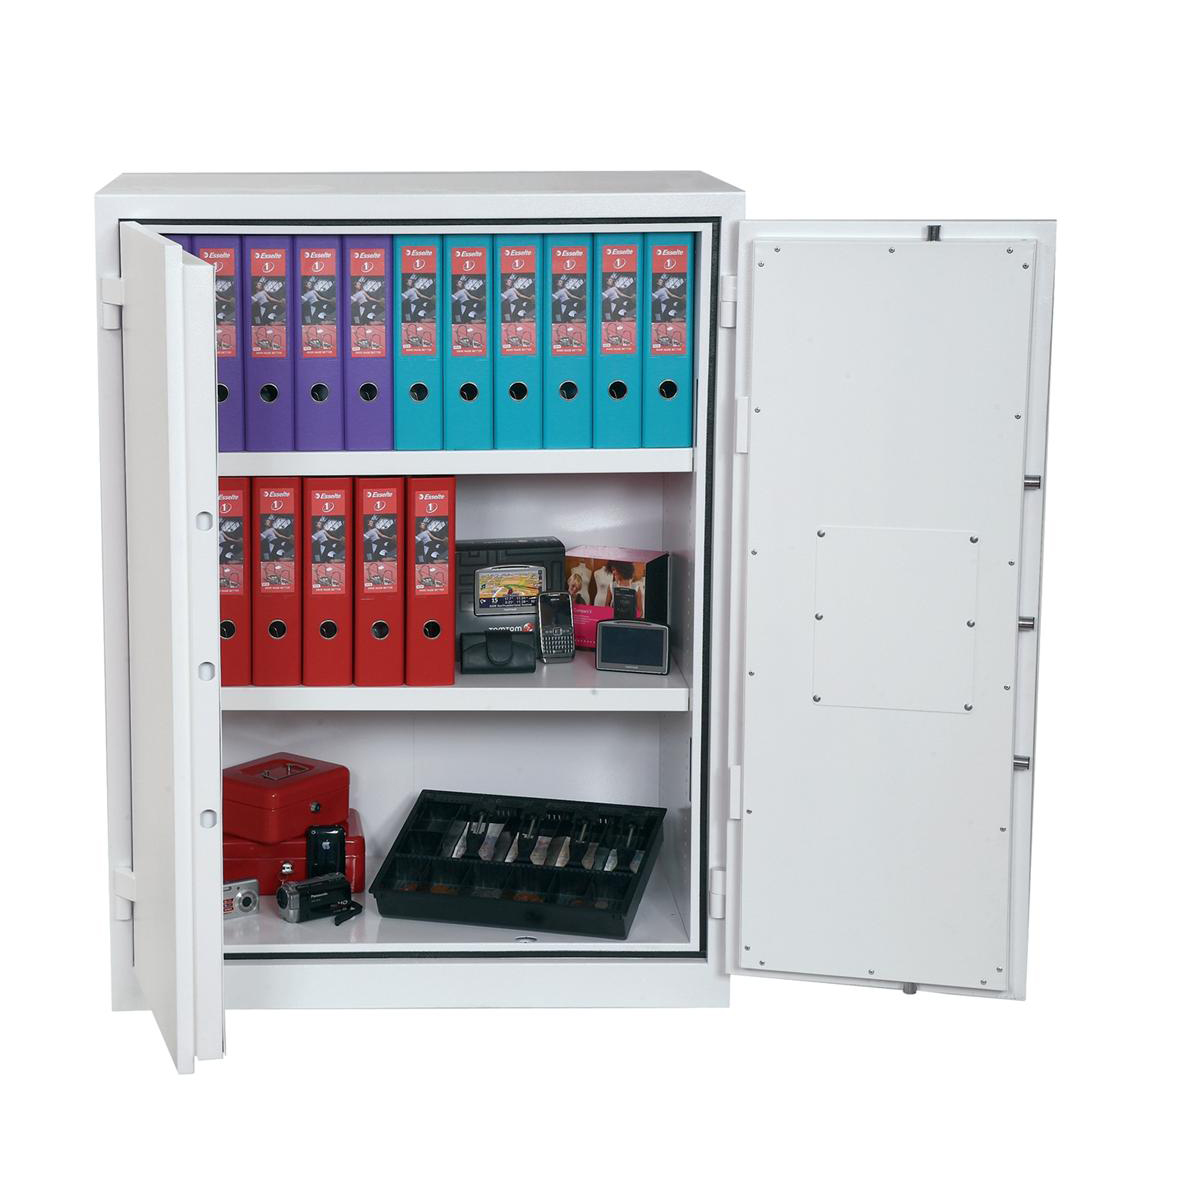 Key Store Phoenix Fire Ranger Steel Storage Cupboard Fire and Burglary Resistant W935xD520x1225mm Ref FS1512K